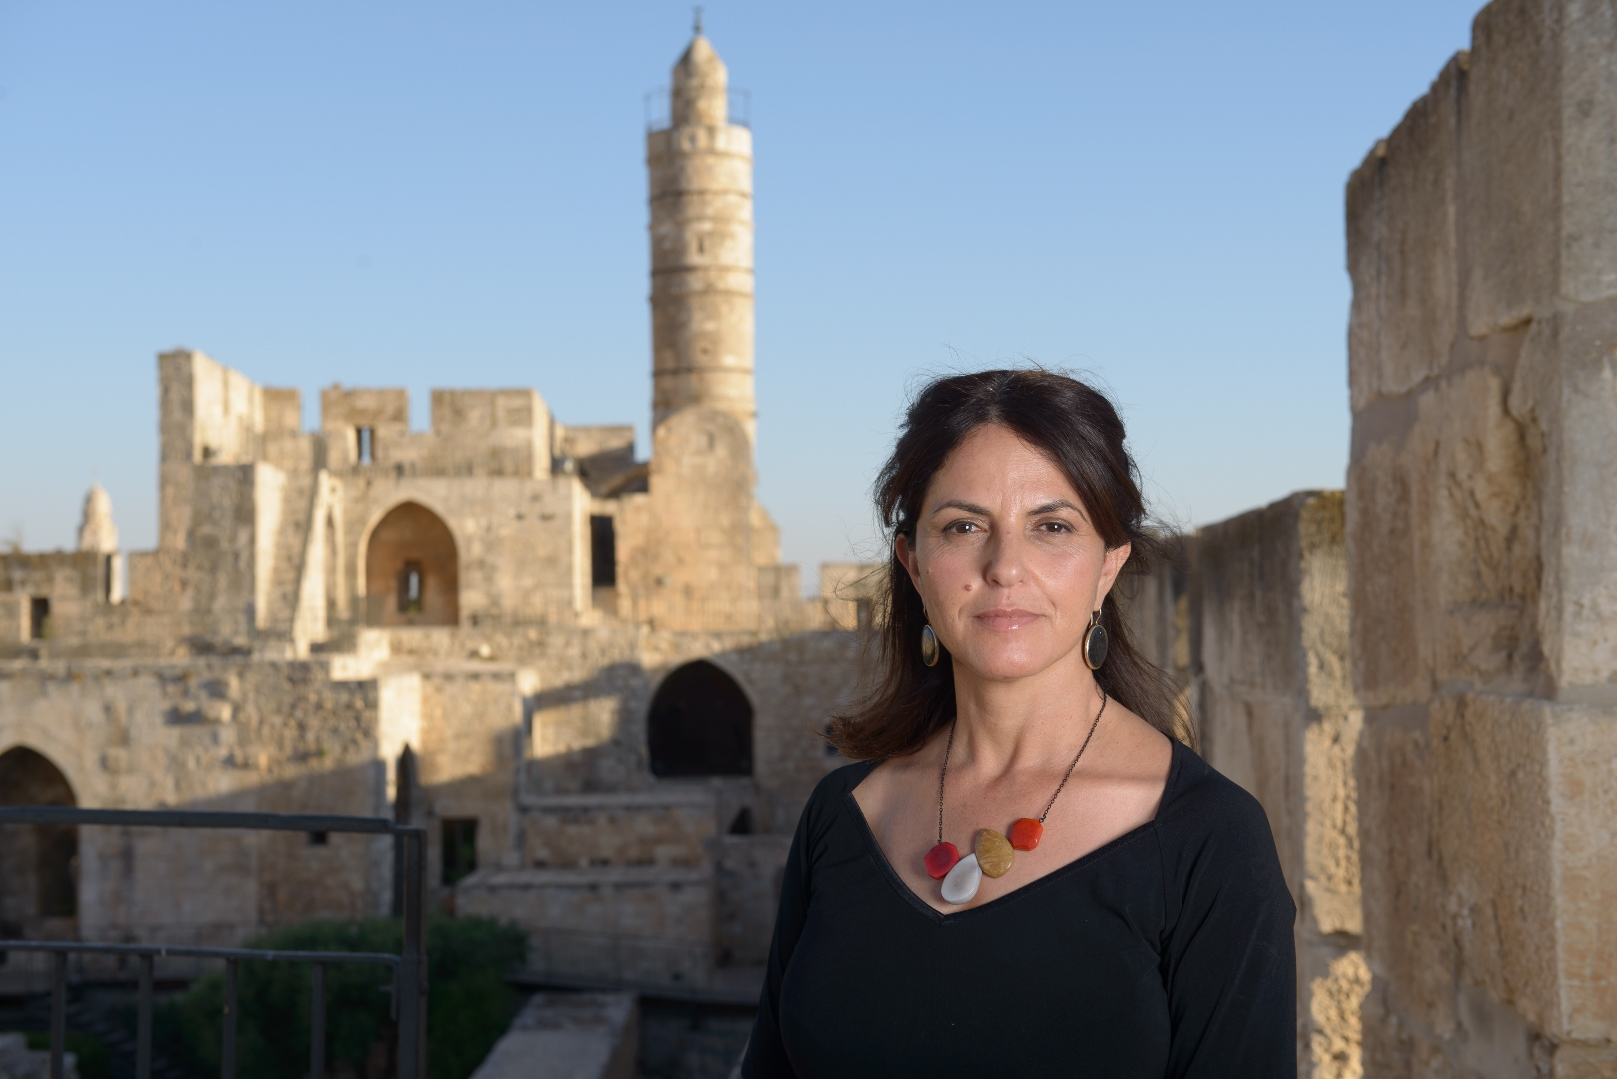 Tower of David Museum Director Eilat Lieber. Photo by Yuval Yosef